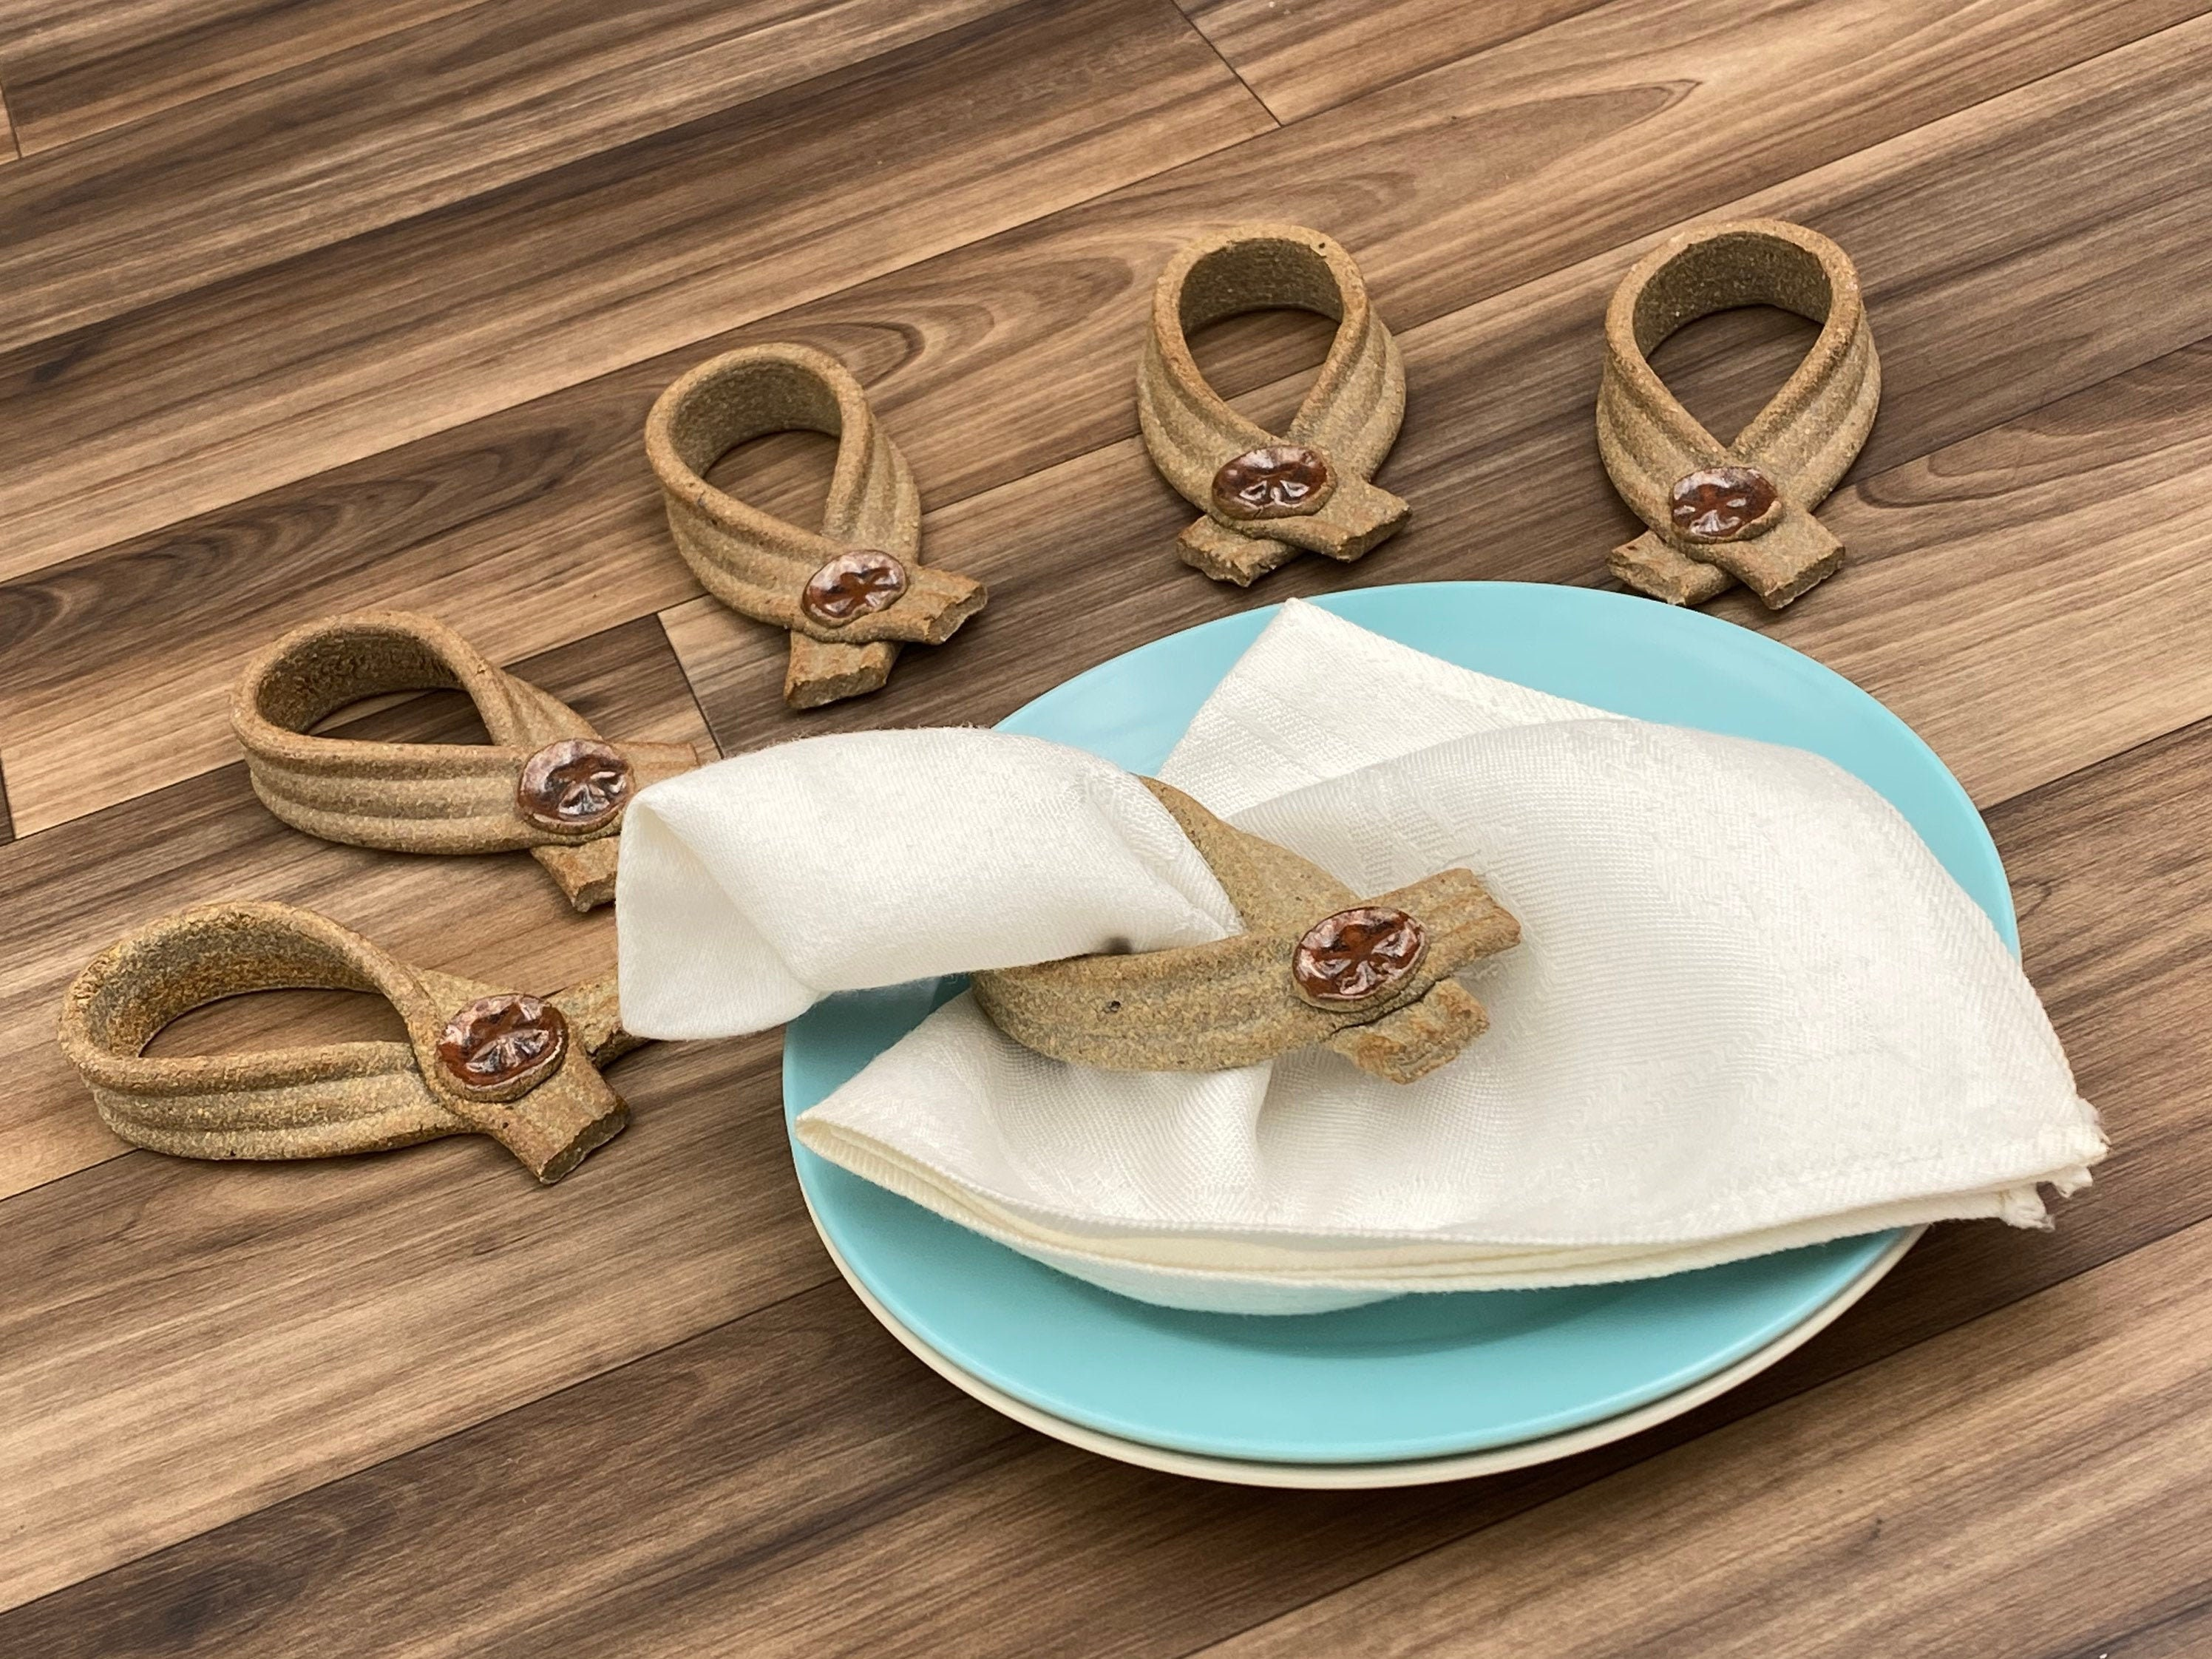 Vintage Seashell Napkin Rings 6 Piece Set Cottage Chic Beach Decor Figural Ceramic Napkin Holders